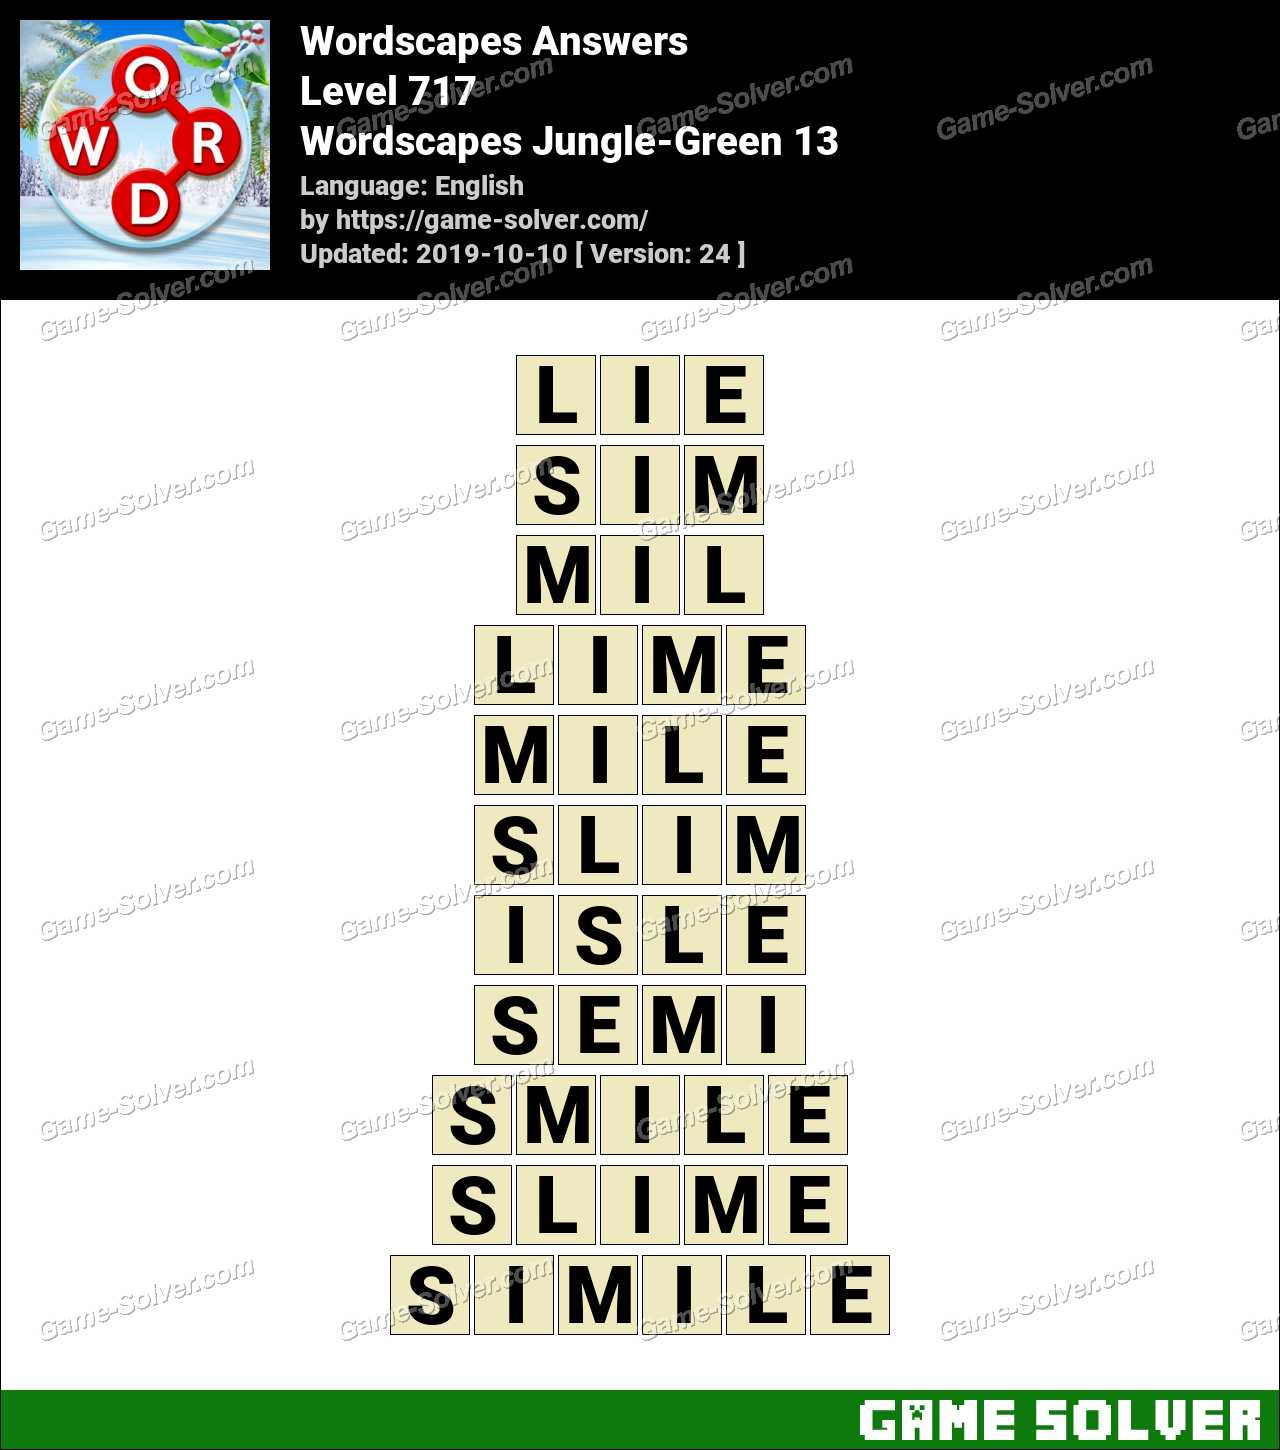 Wordscapes Jungle-Green 13 Answers